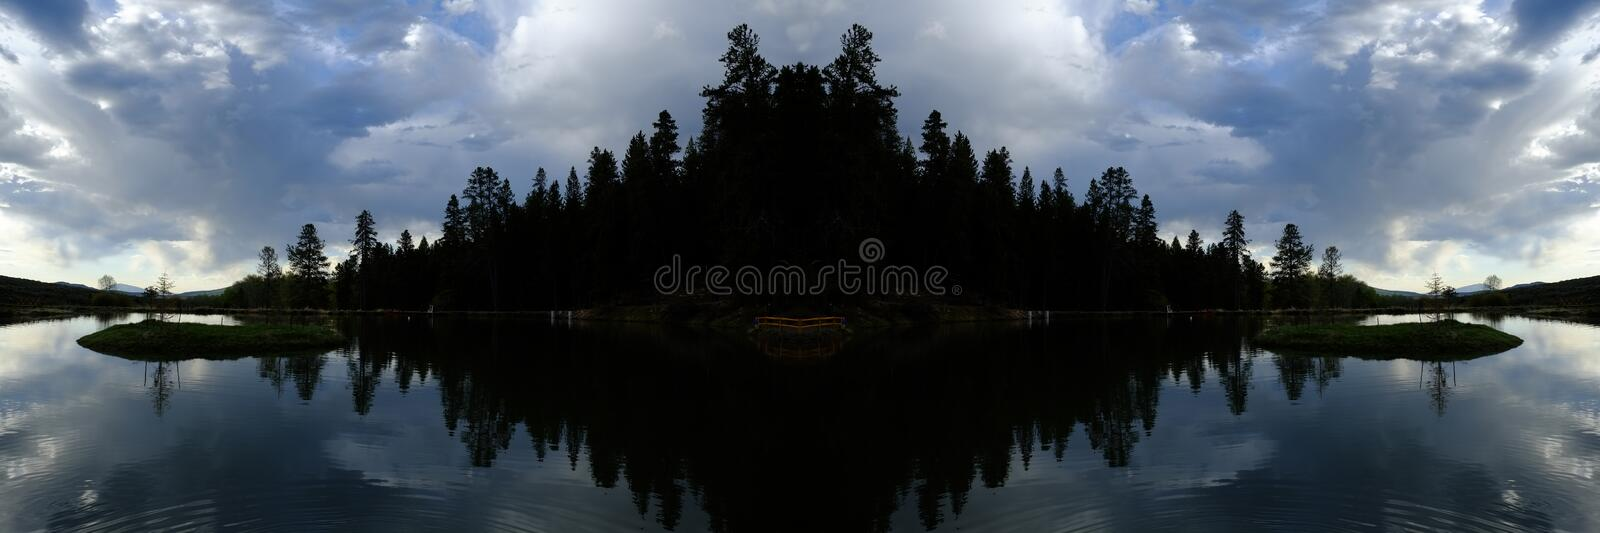 Mirrored Lake Water with Pine Trees royalty free stock photo